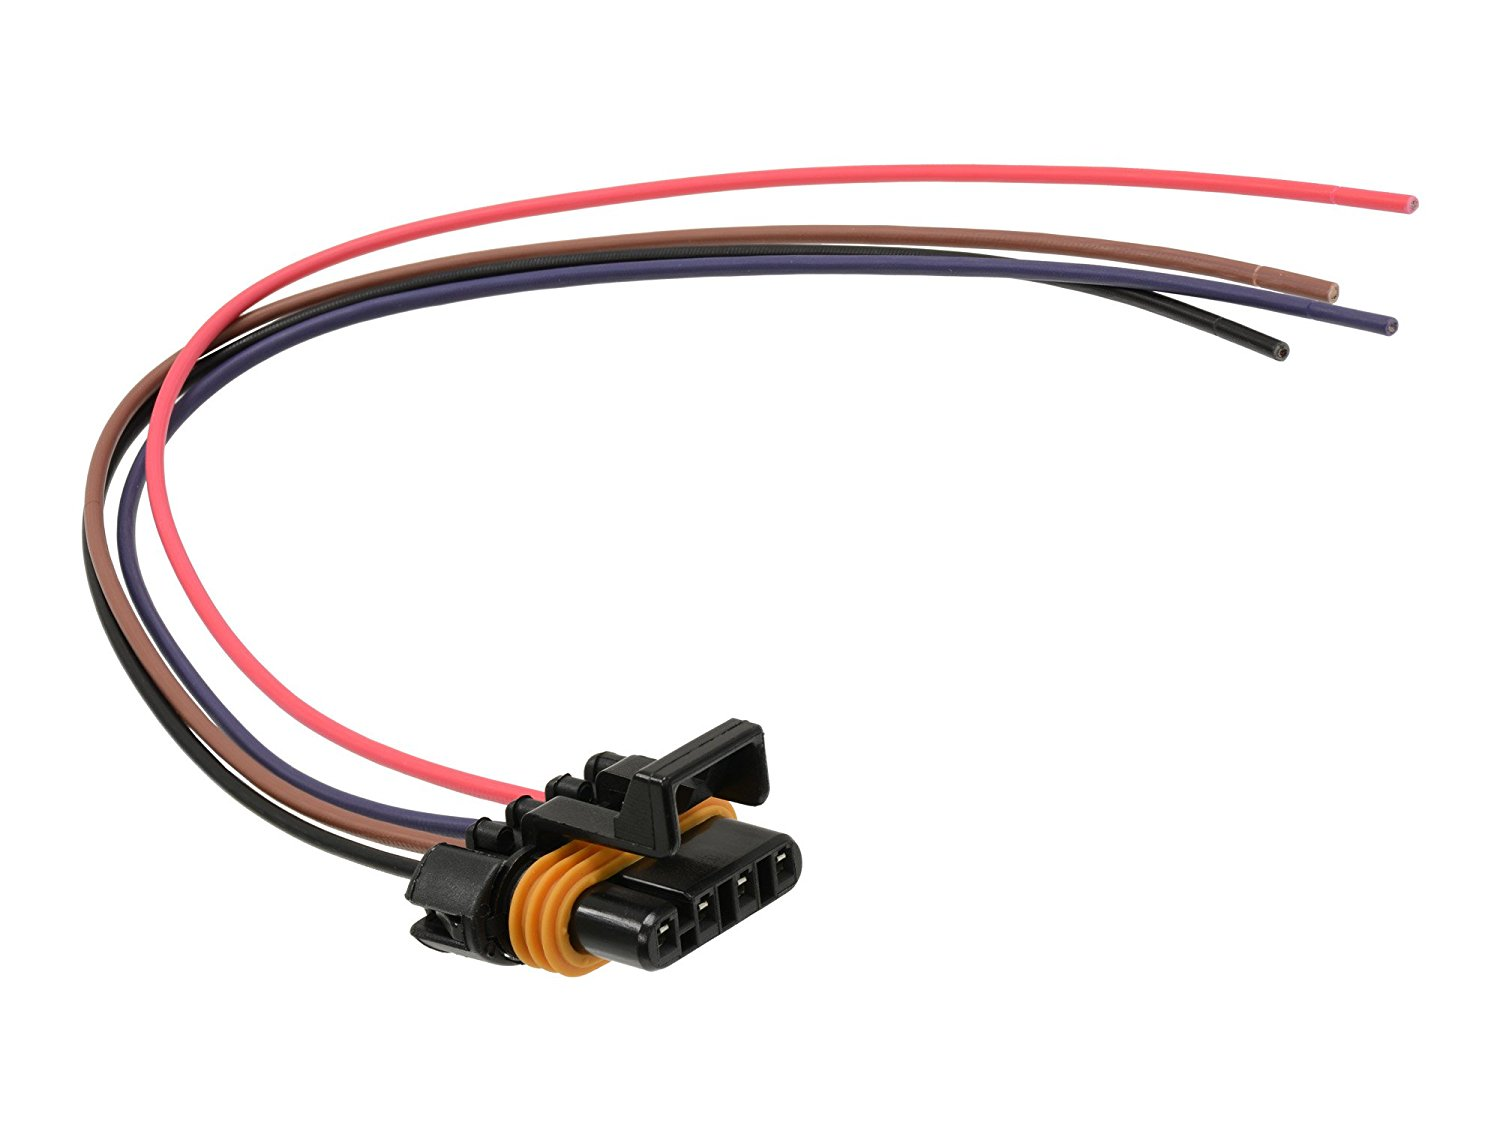 hight resolution of 1 x ls1 ls6 ignition coil wiring harness pigtail connector gm camaro